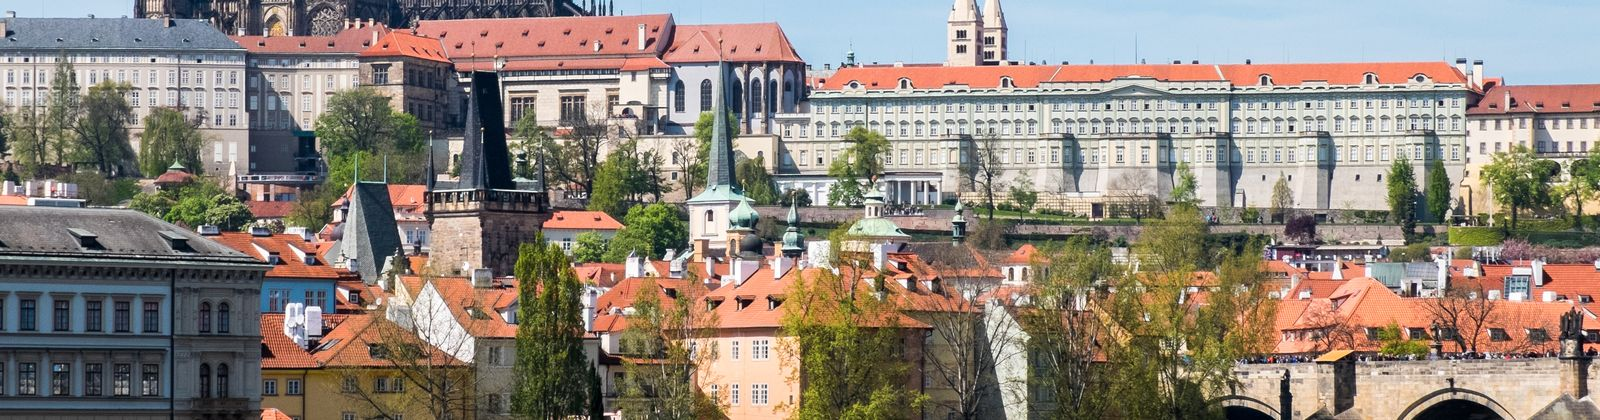 Attractions And Things To Do In Prague - A walking tour of prague 15 historical landmarks